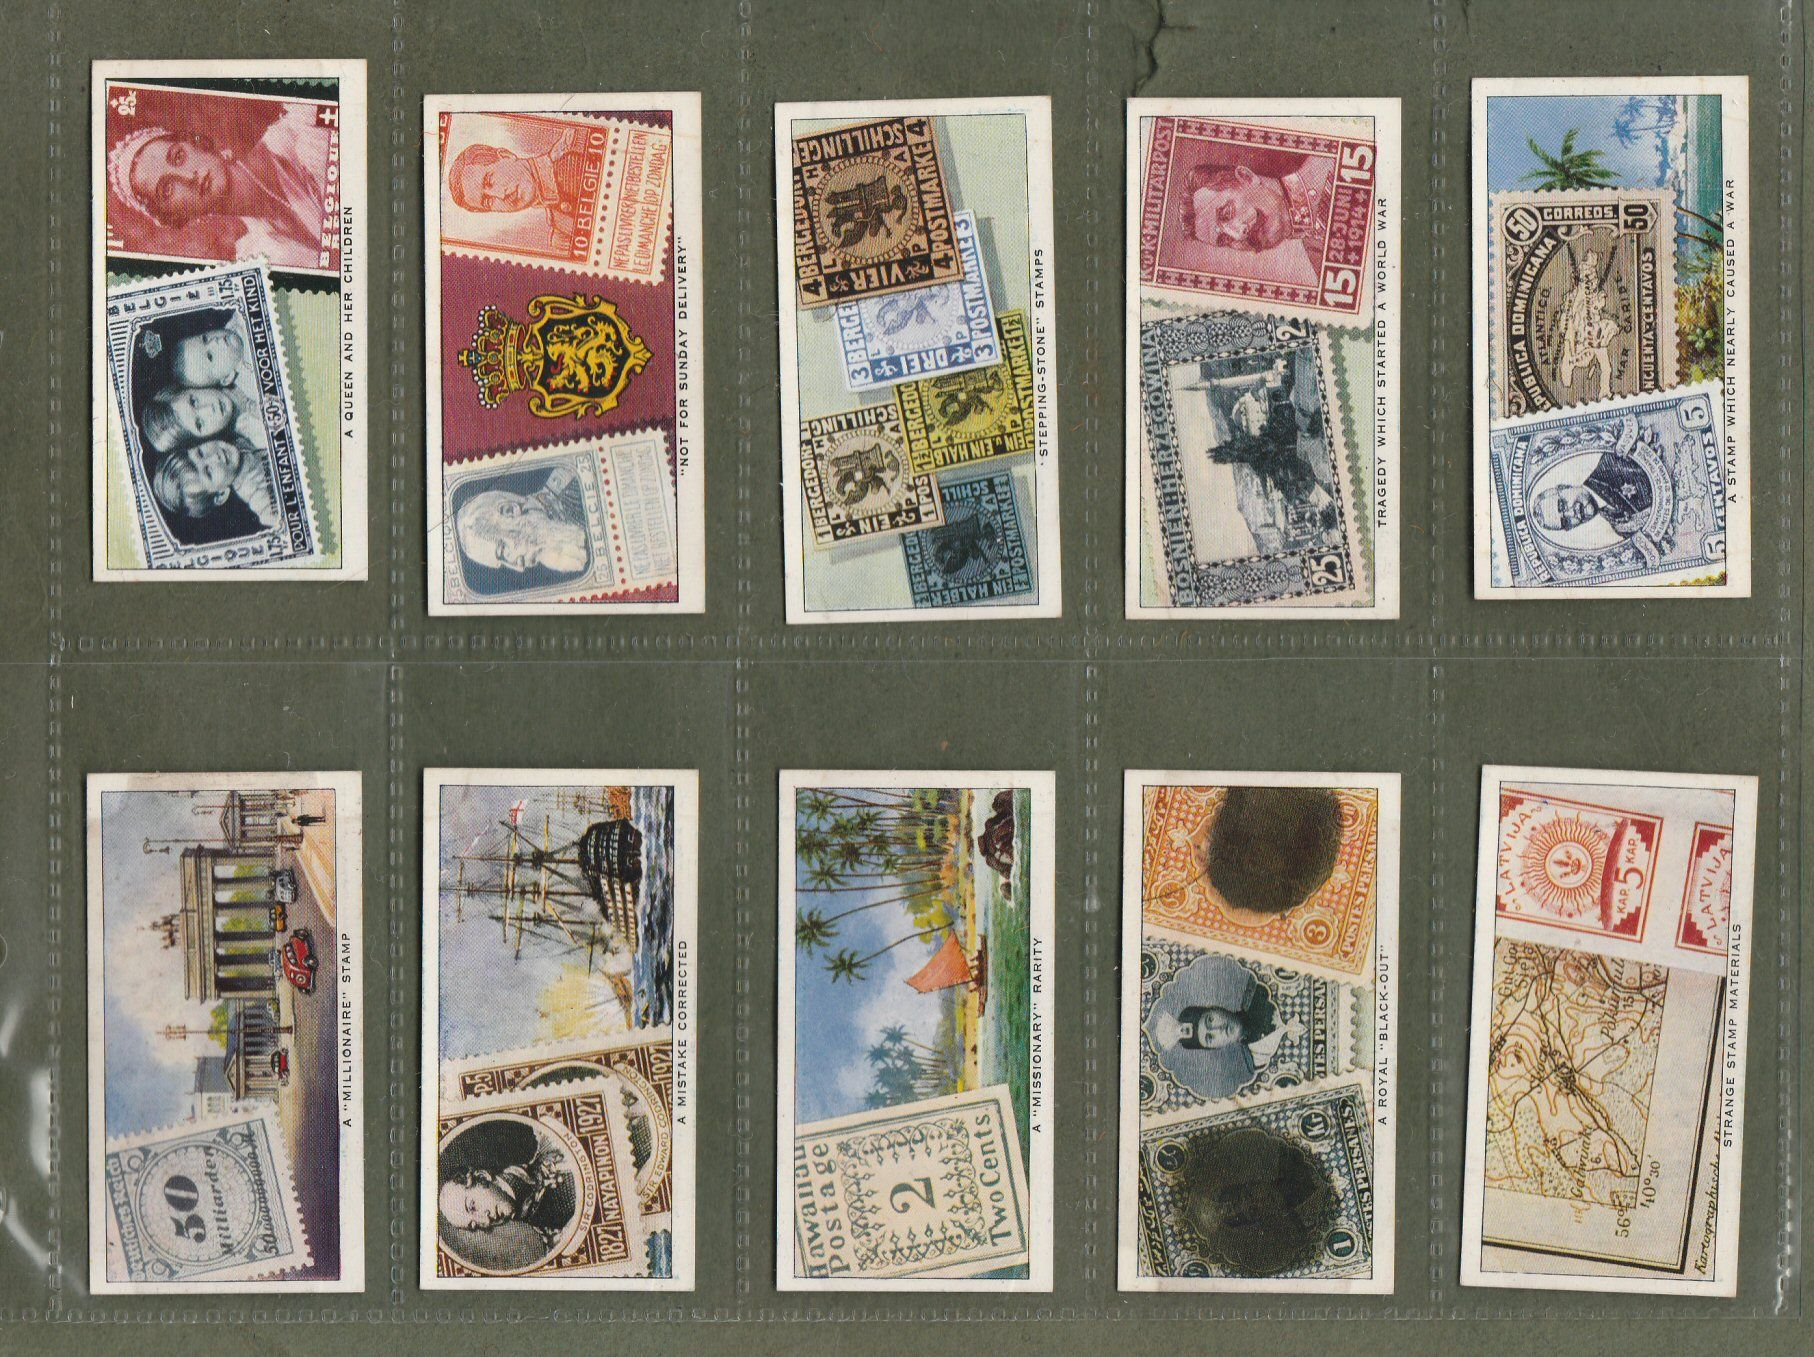 Collectable Tobacco Cigarette Cards Rare Post Stamps 1939